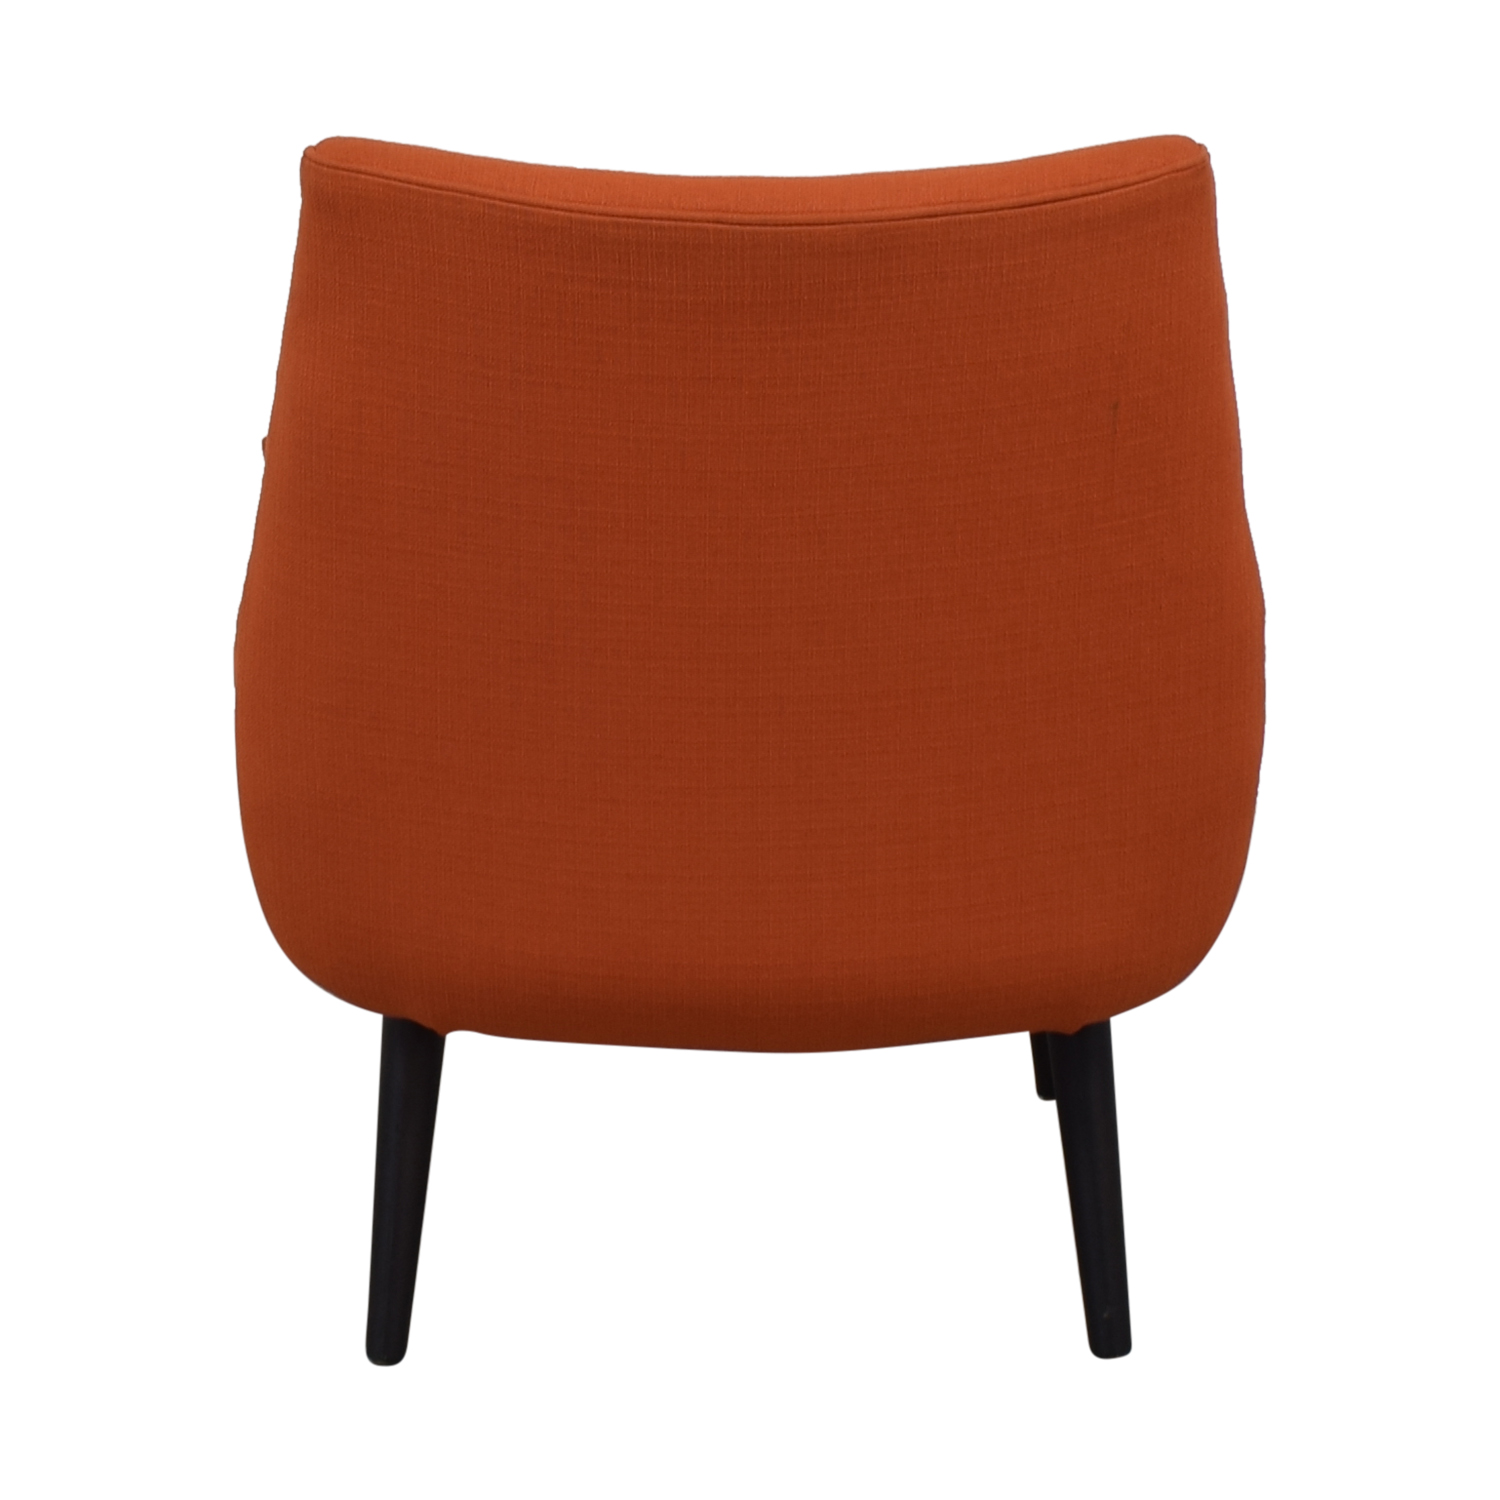 Johnathan Alder Johnathan Alder Mrs. Godfrey's Orange Accent Chair Chairs